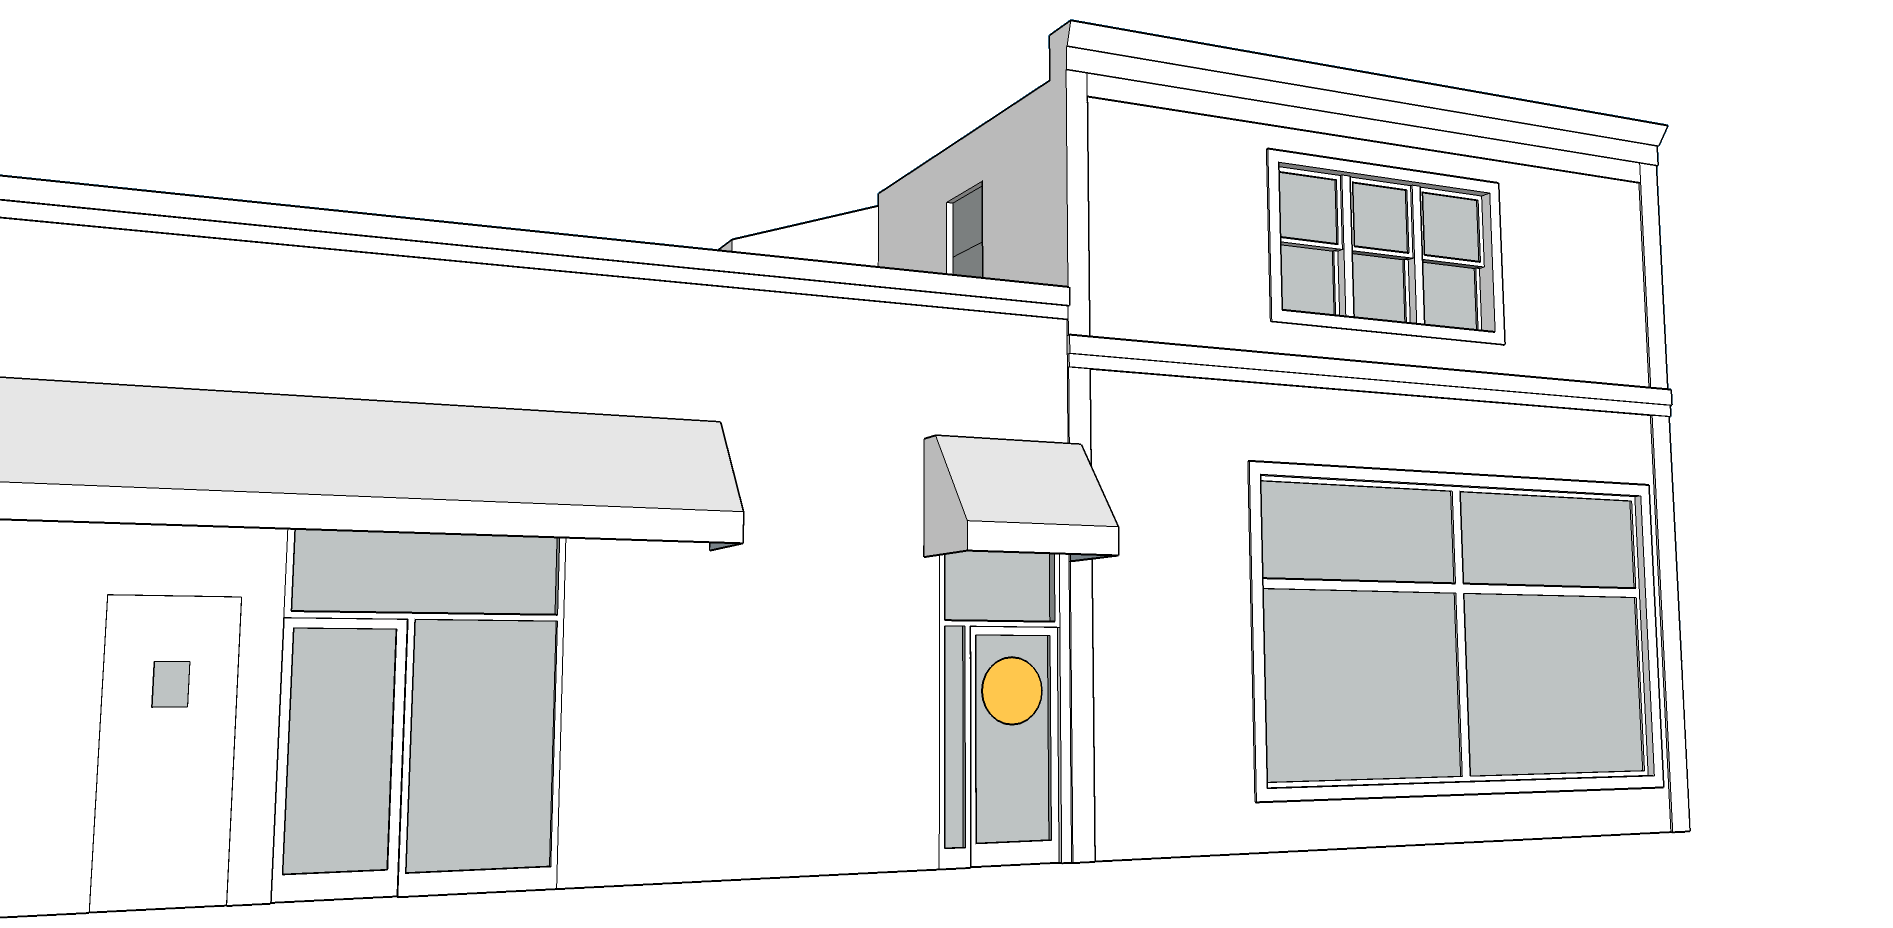 WINDOW SIGN   - Not to exceed 20 SF.  - Not to exceed 25% of window area.  - Neon signs cannot be larger than 6 SF.  - Font cannot be taller than 8 in.  - Only one window sign per business.